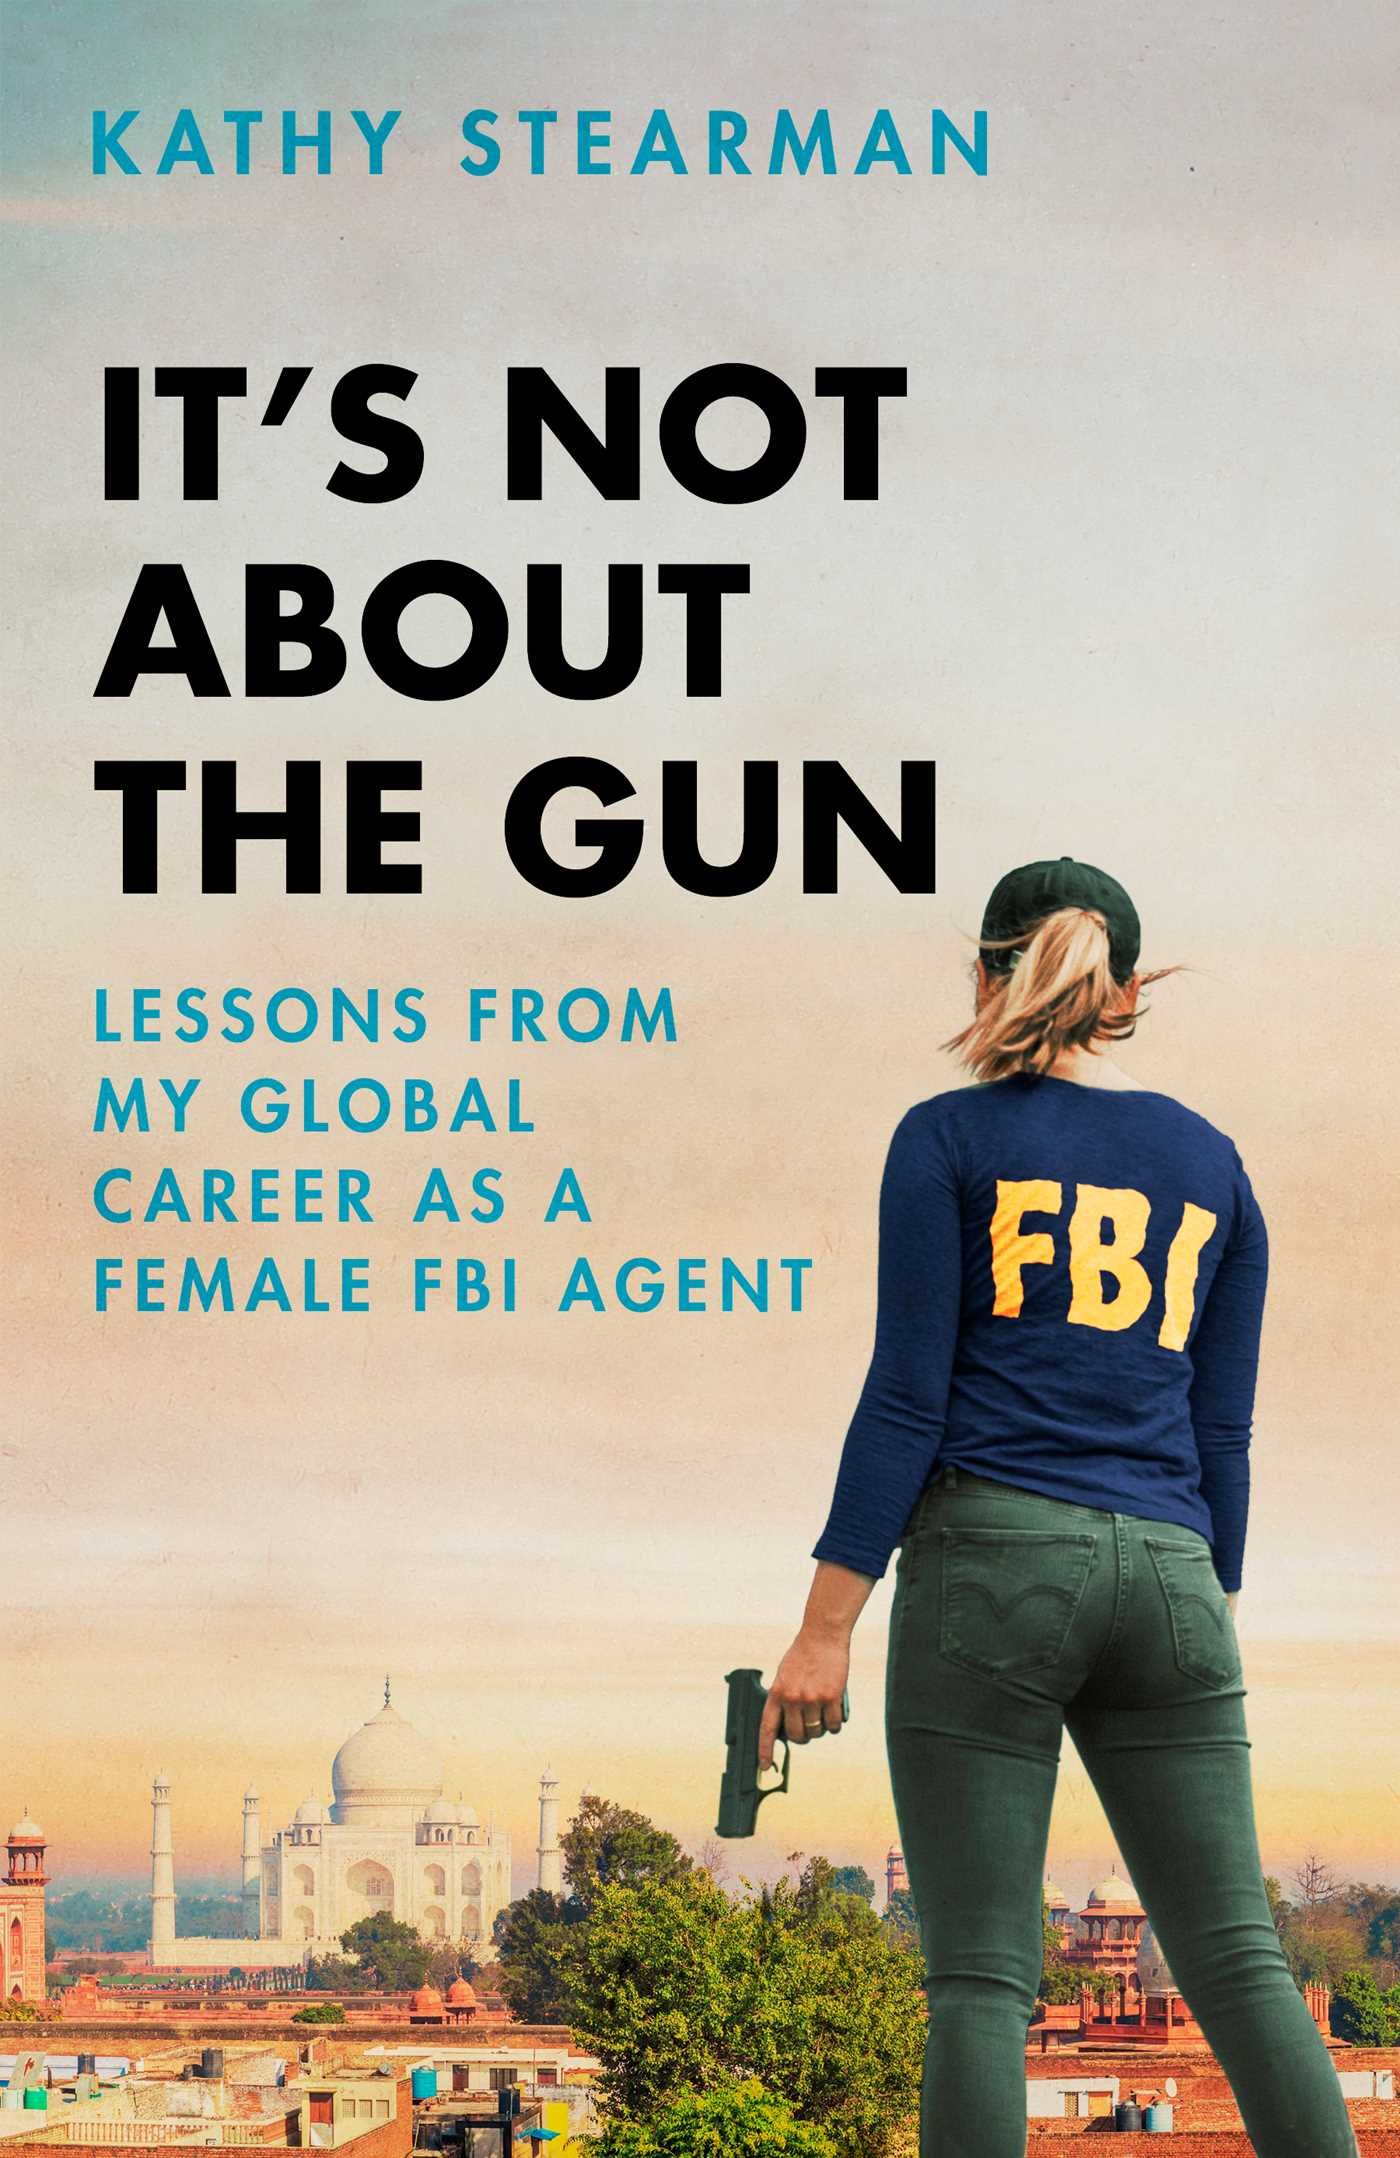 It's Not About the Gun: Lessons from My Global Career as a Female FBI Agent